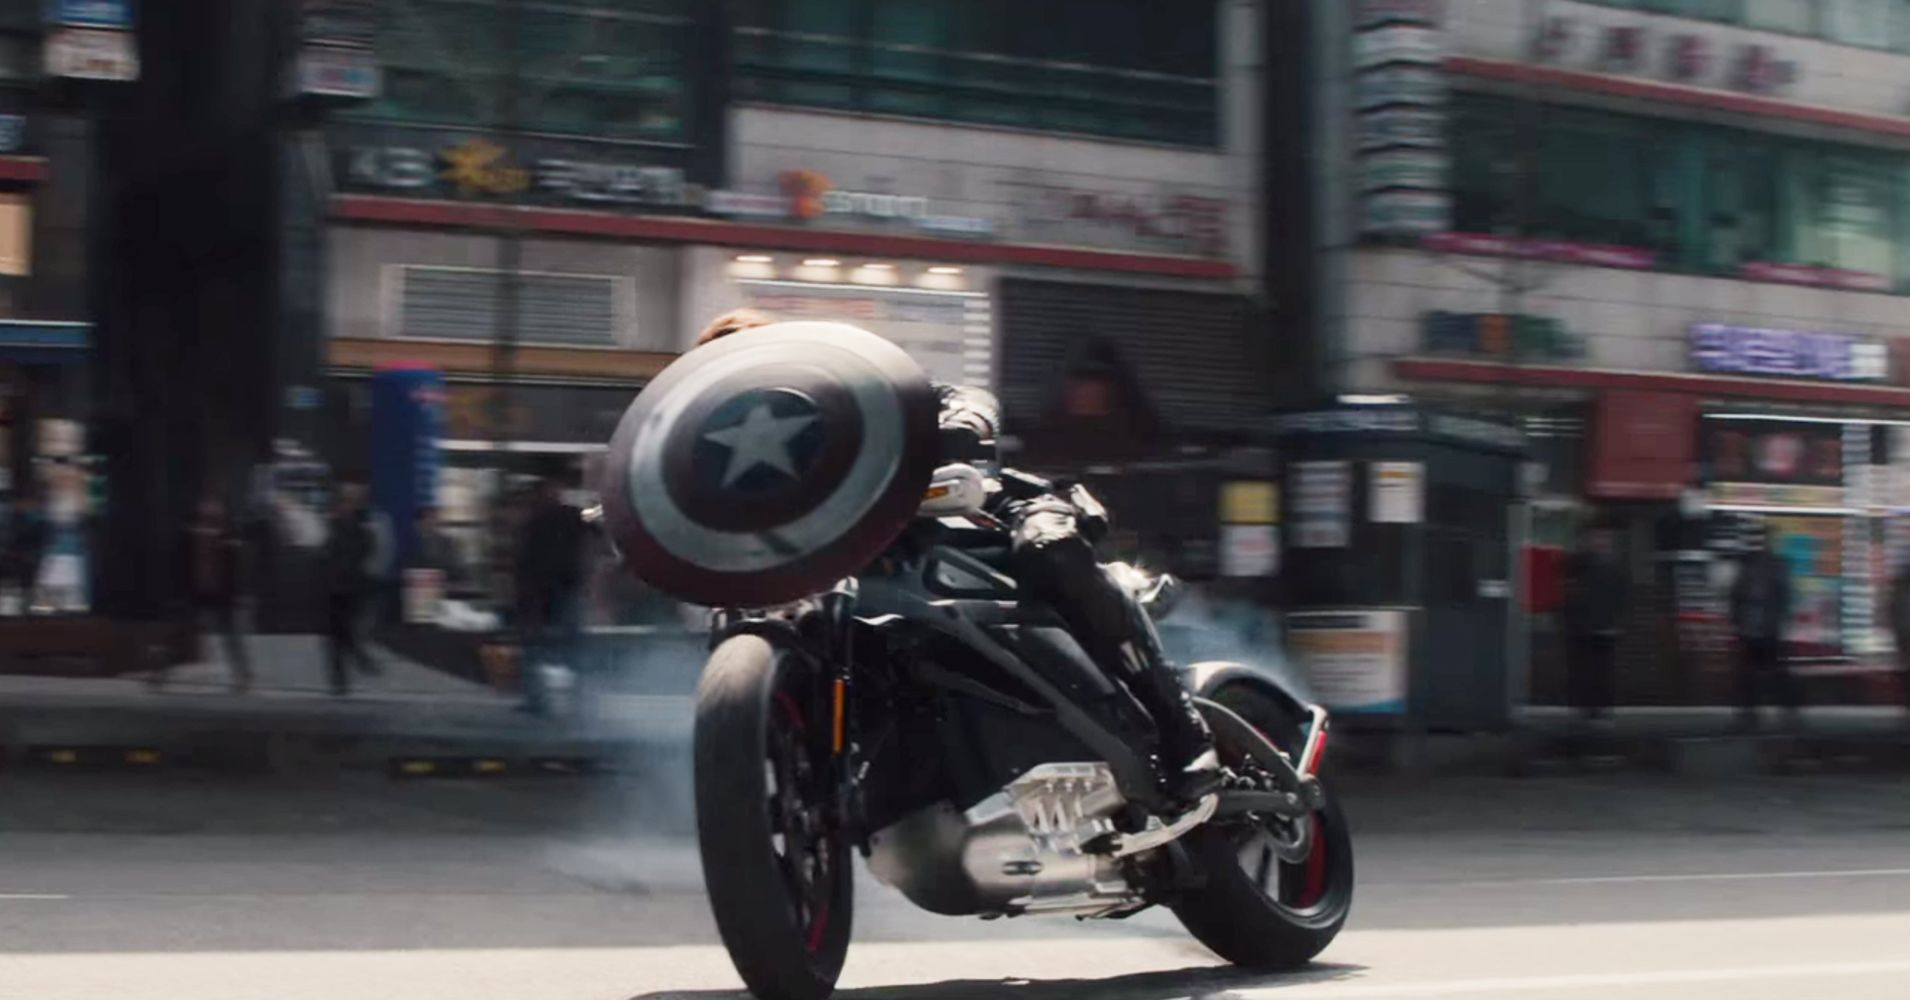 Pin By Dev On Supercars And Bikes With Images Avengers Harley Electric Bike